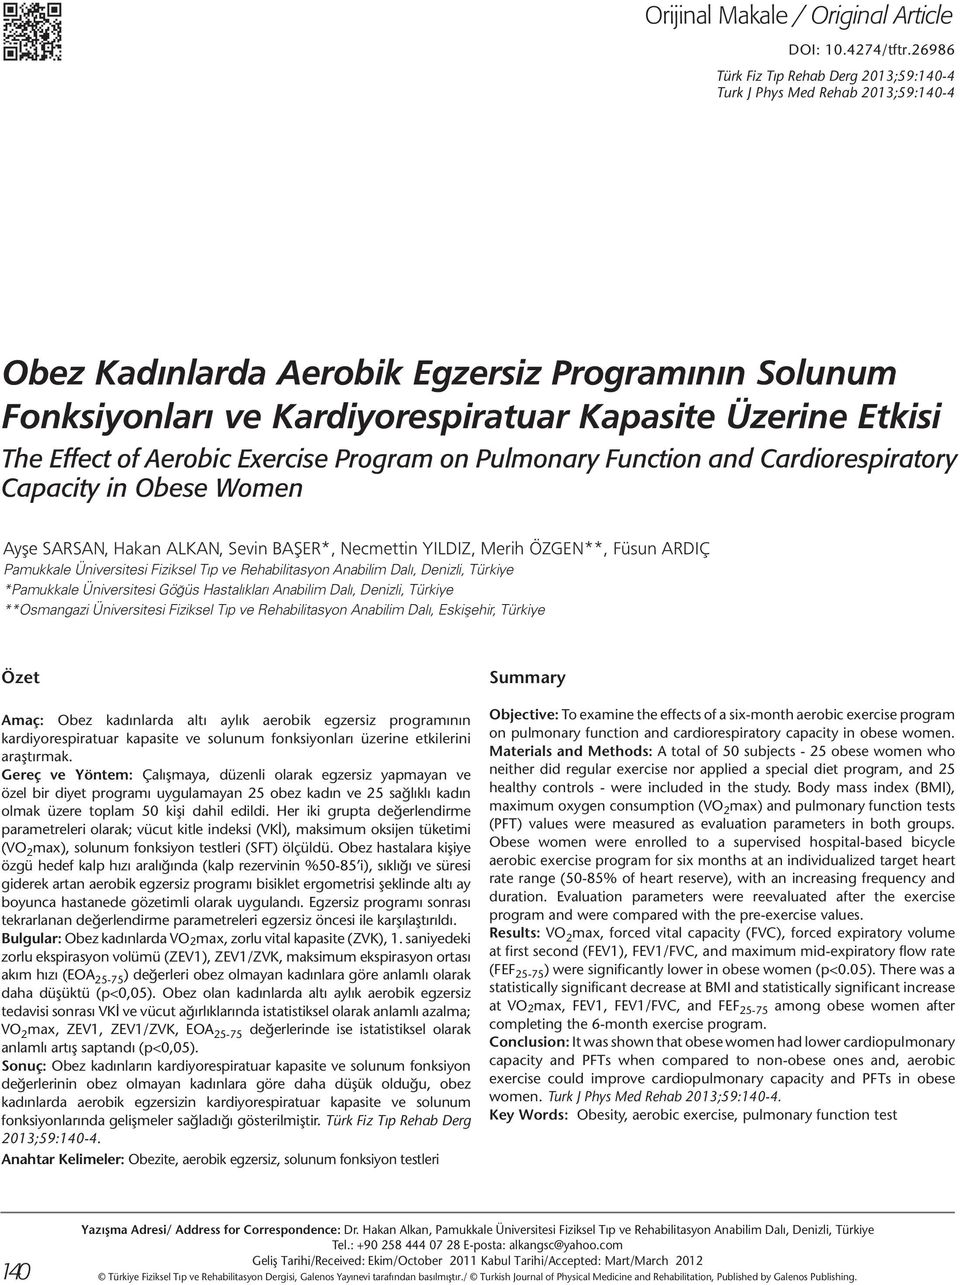 Effect of Aerobic Exercise Program on Pulmonary Function and Cardiorespiratory Capacity in Obese Women Ayşe Sarsan, Hakan Alkan, Sevin Başer*, Necmettin Yıldız, Merih Özgen**, Füsun Ardıç Pamukkale